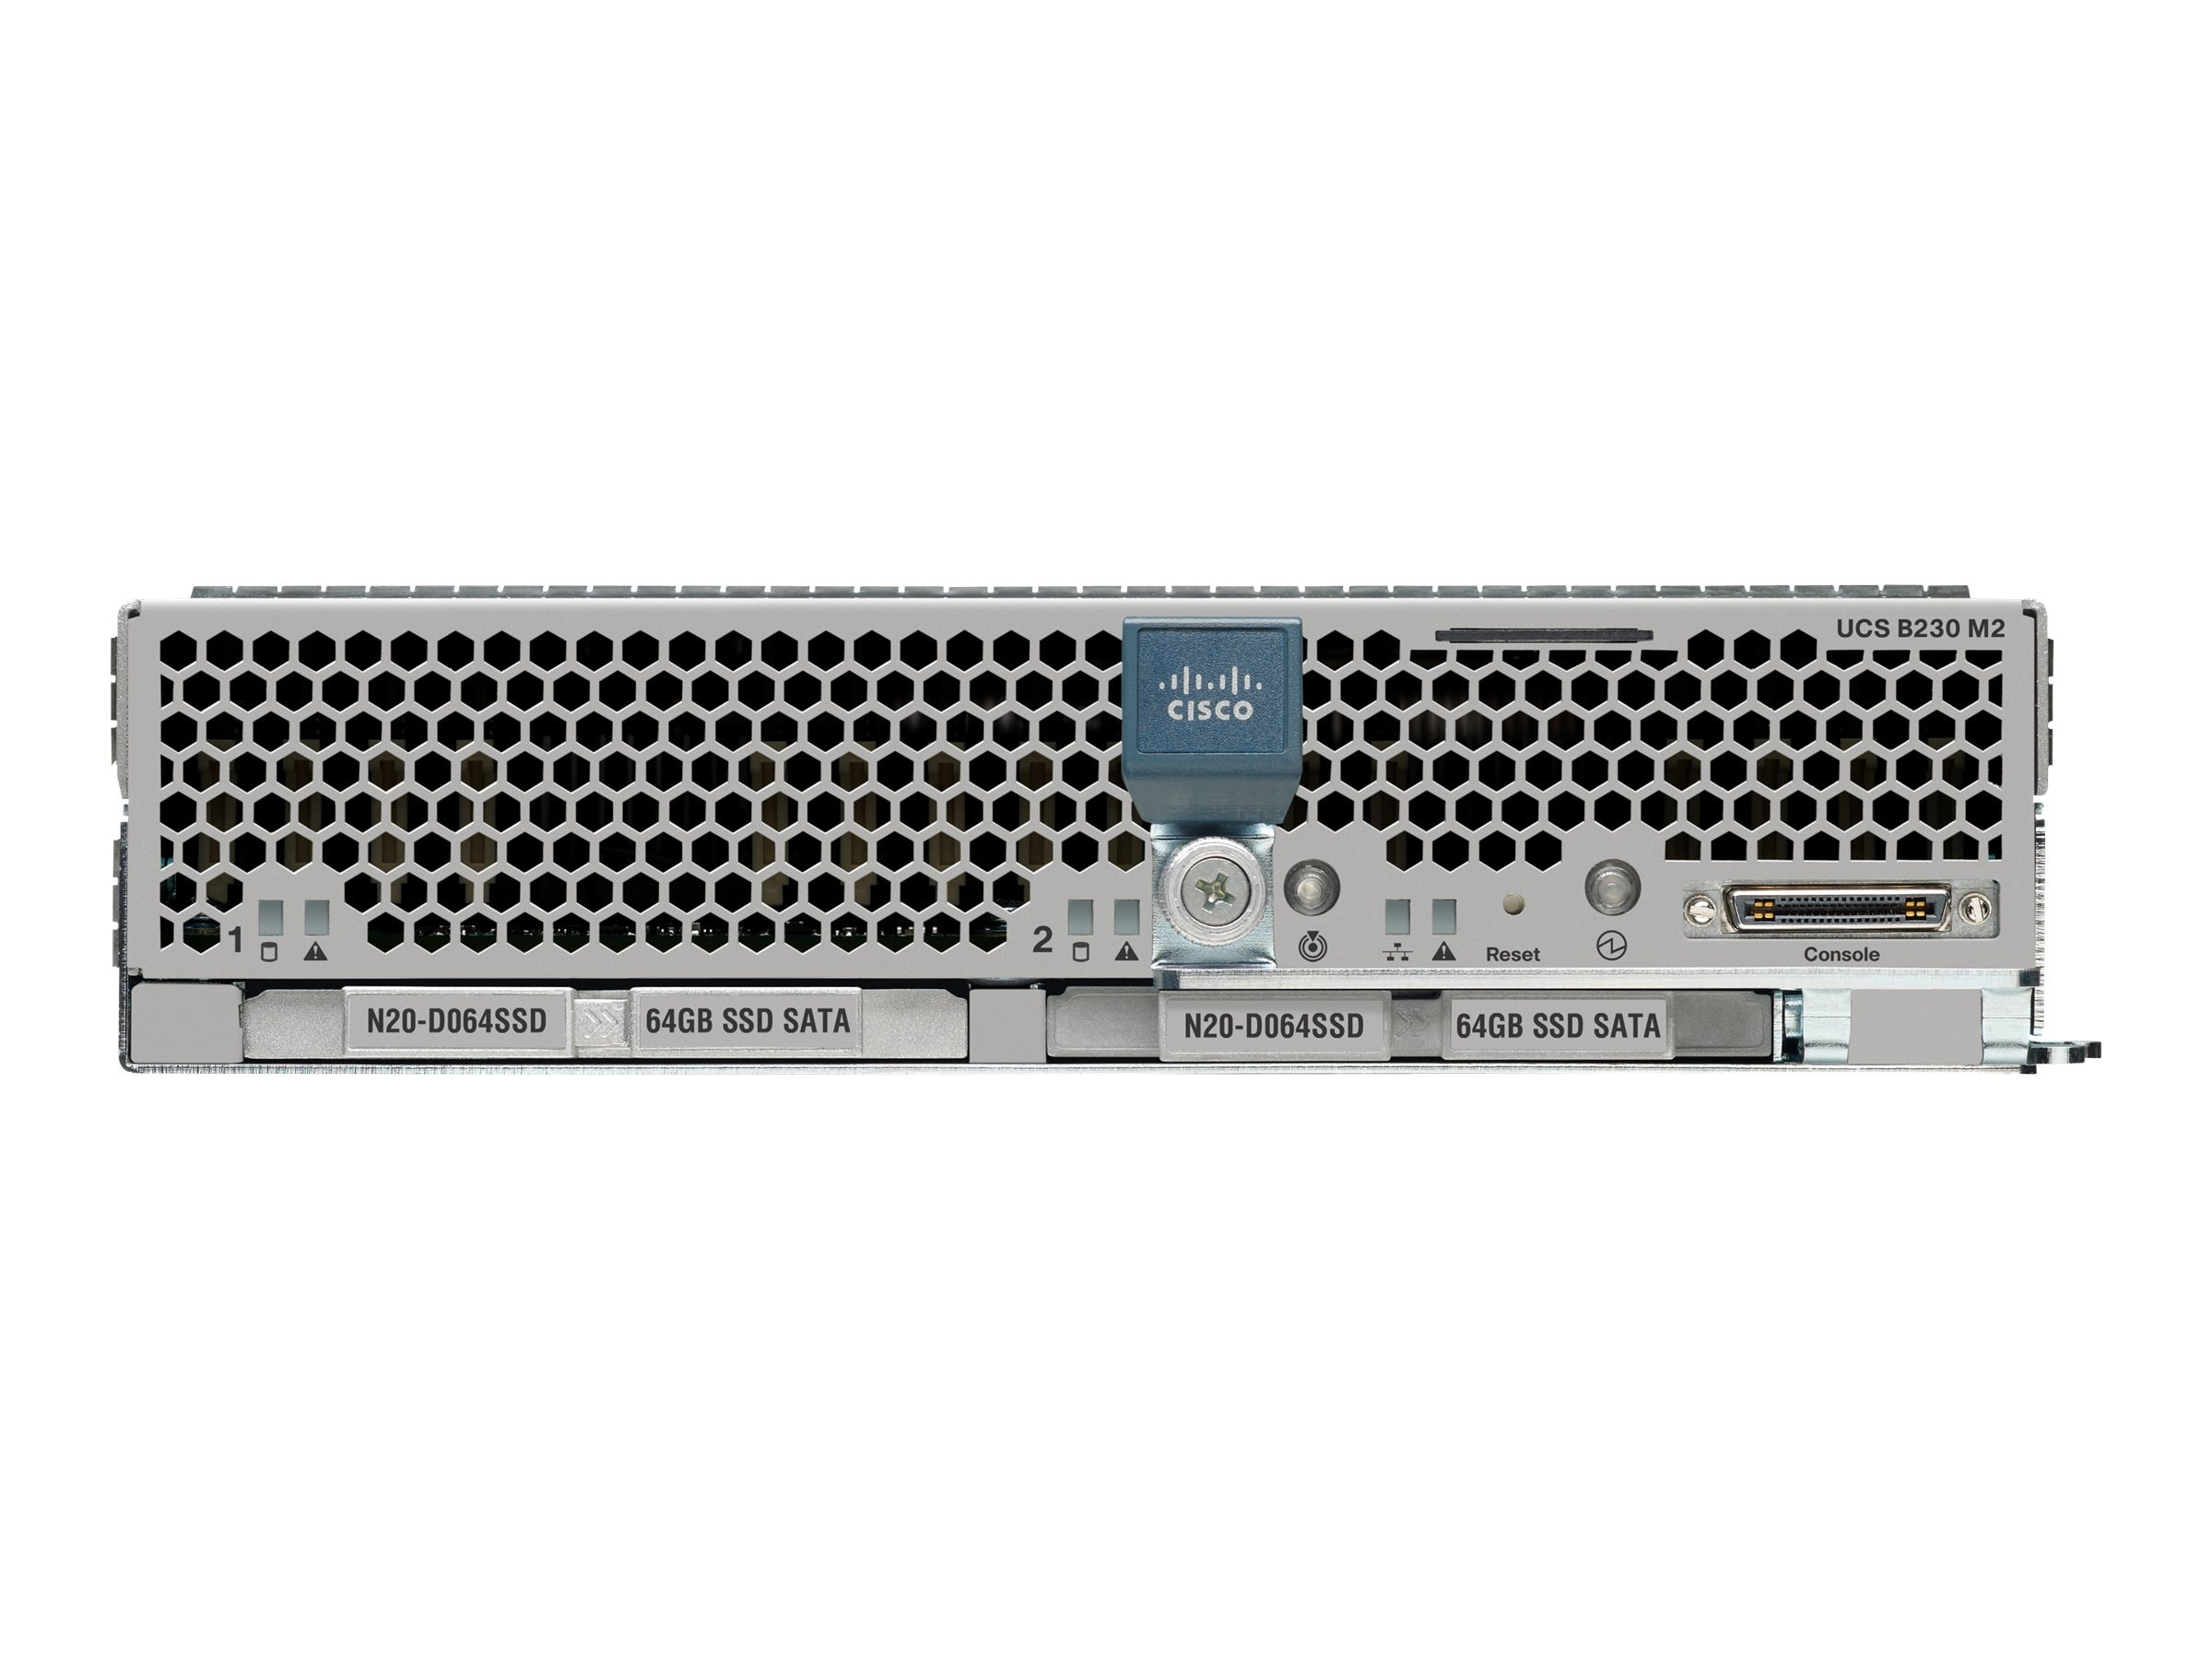 Cisco UCS B230 M2 256GB SmartPlay Expansion Pack (2x) Xeon 10C E7-2870 2.4GHz 256GB VIC1280